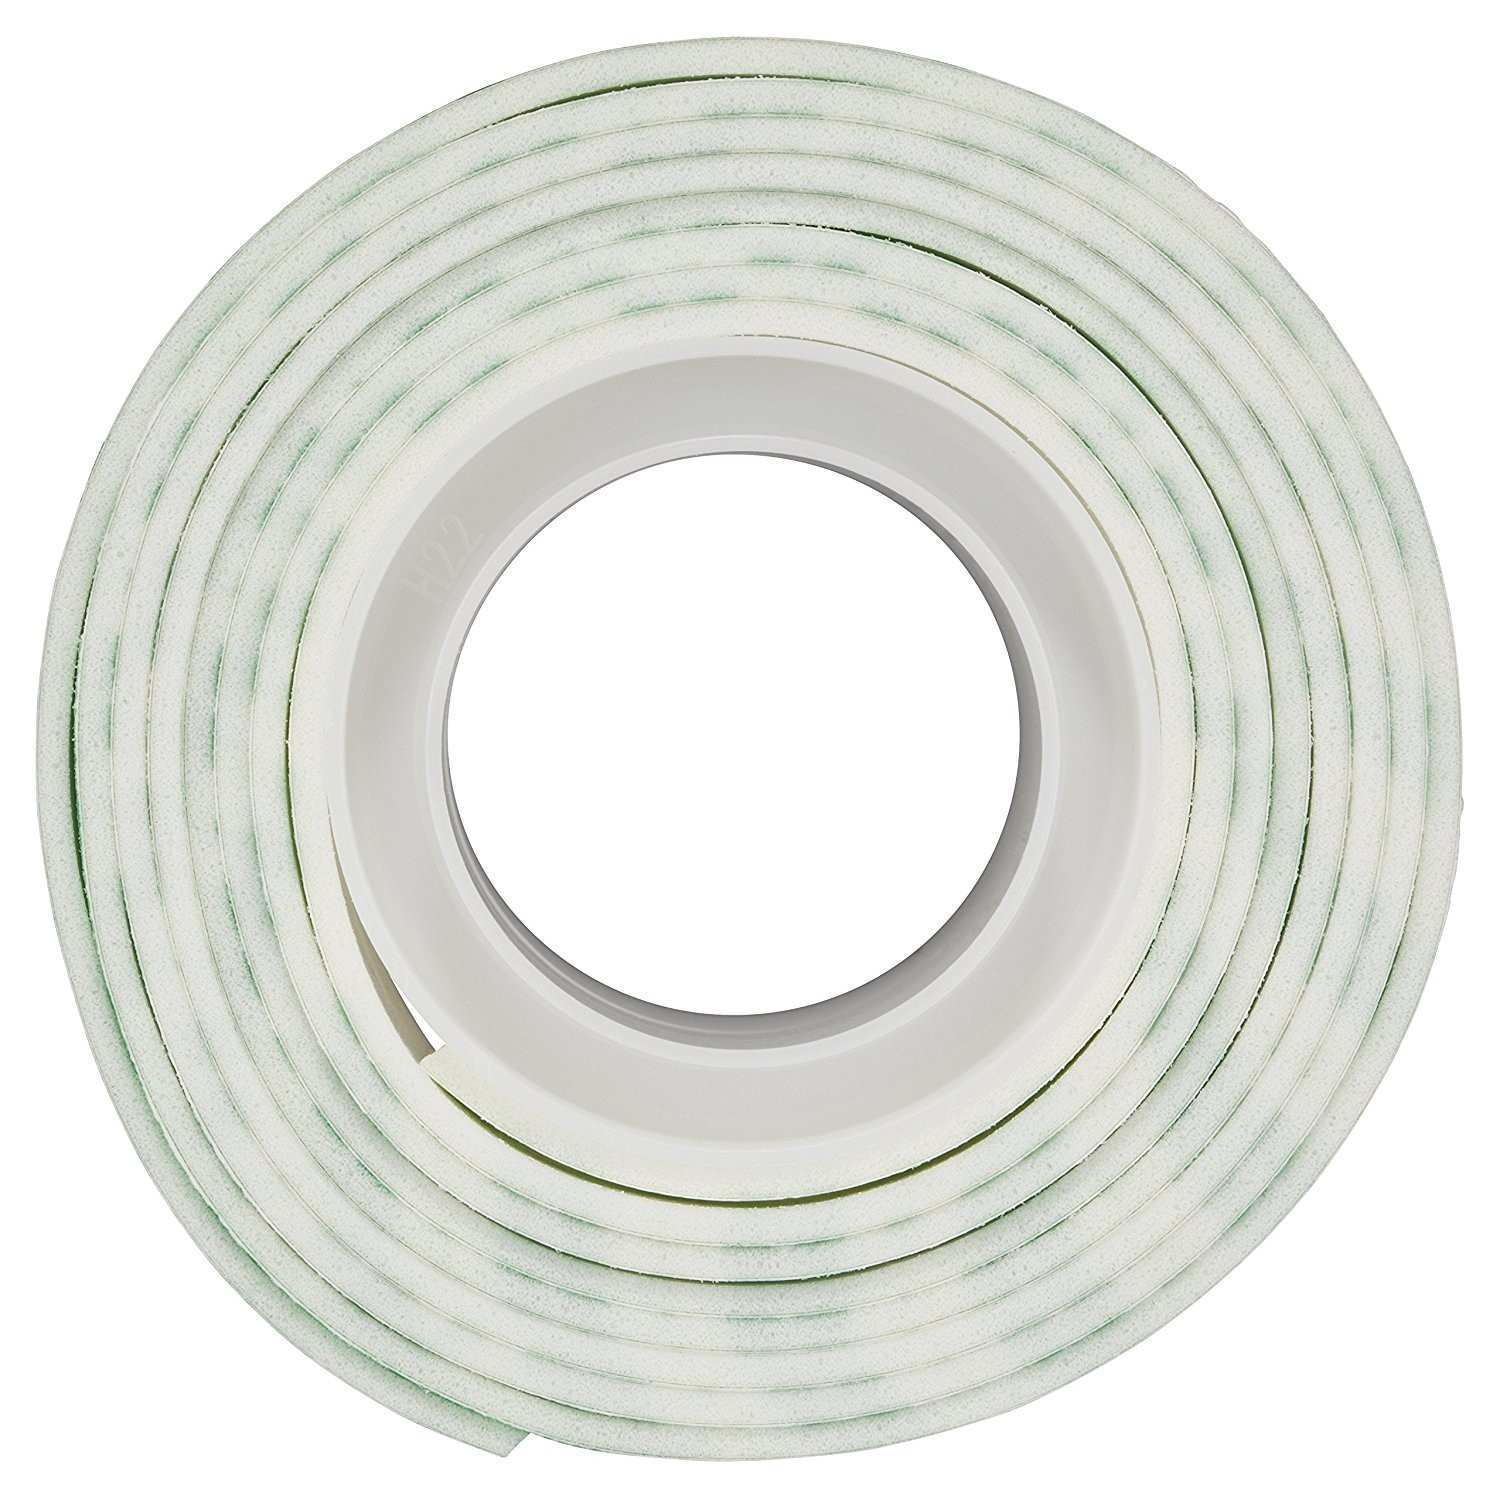 3M Heavy Duty Mounting Tape 1 inch by 50 inch Amazon